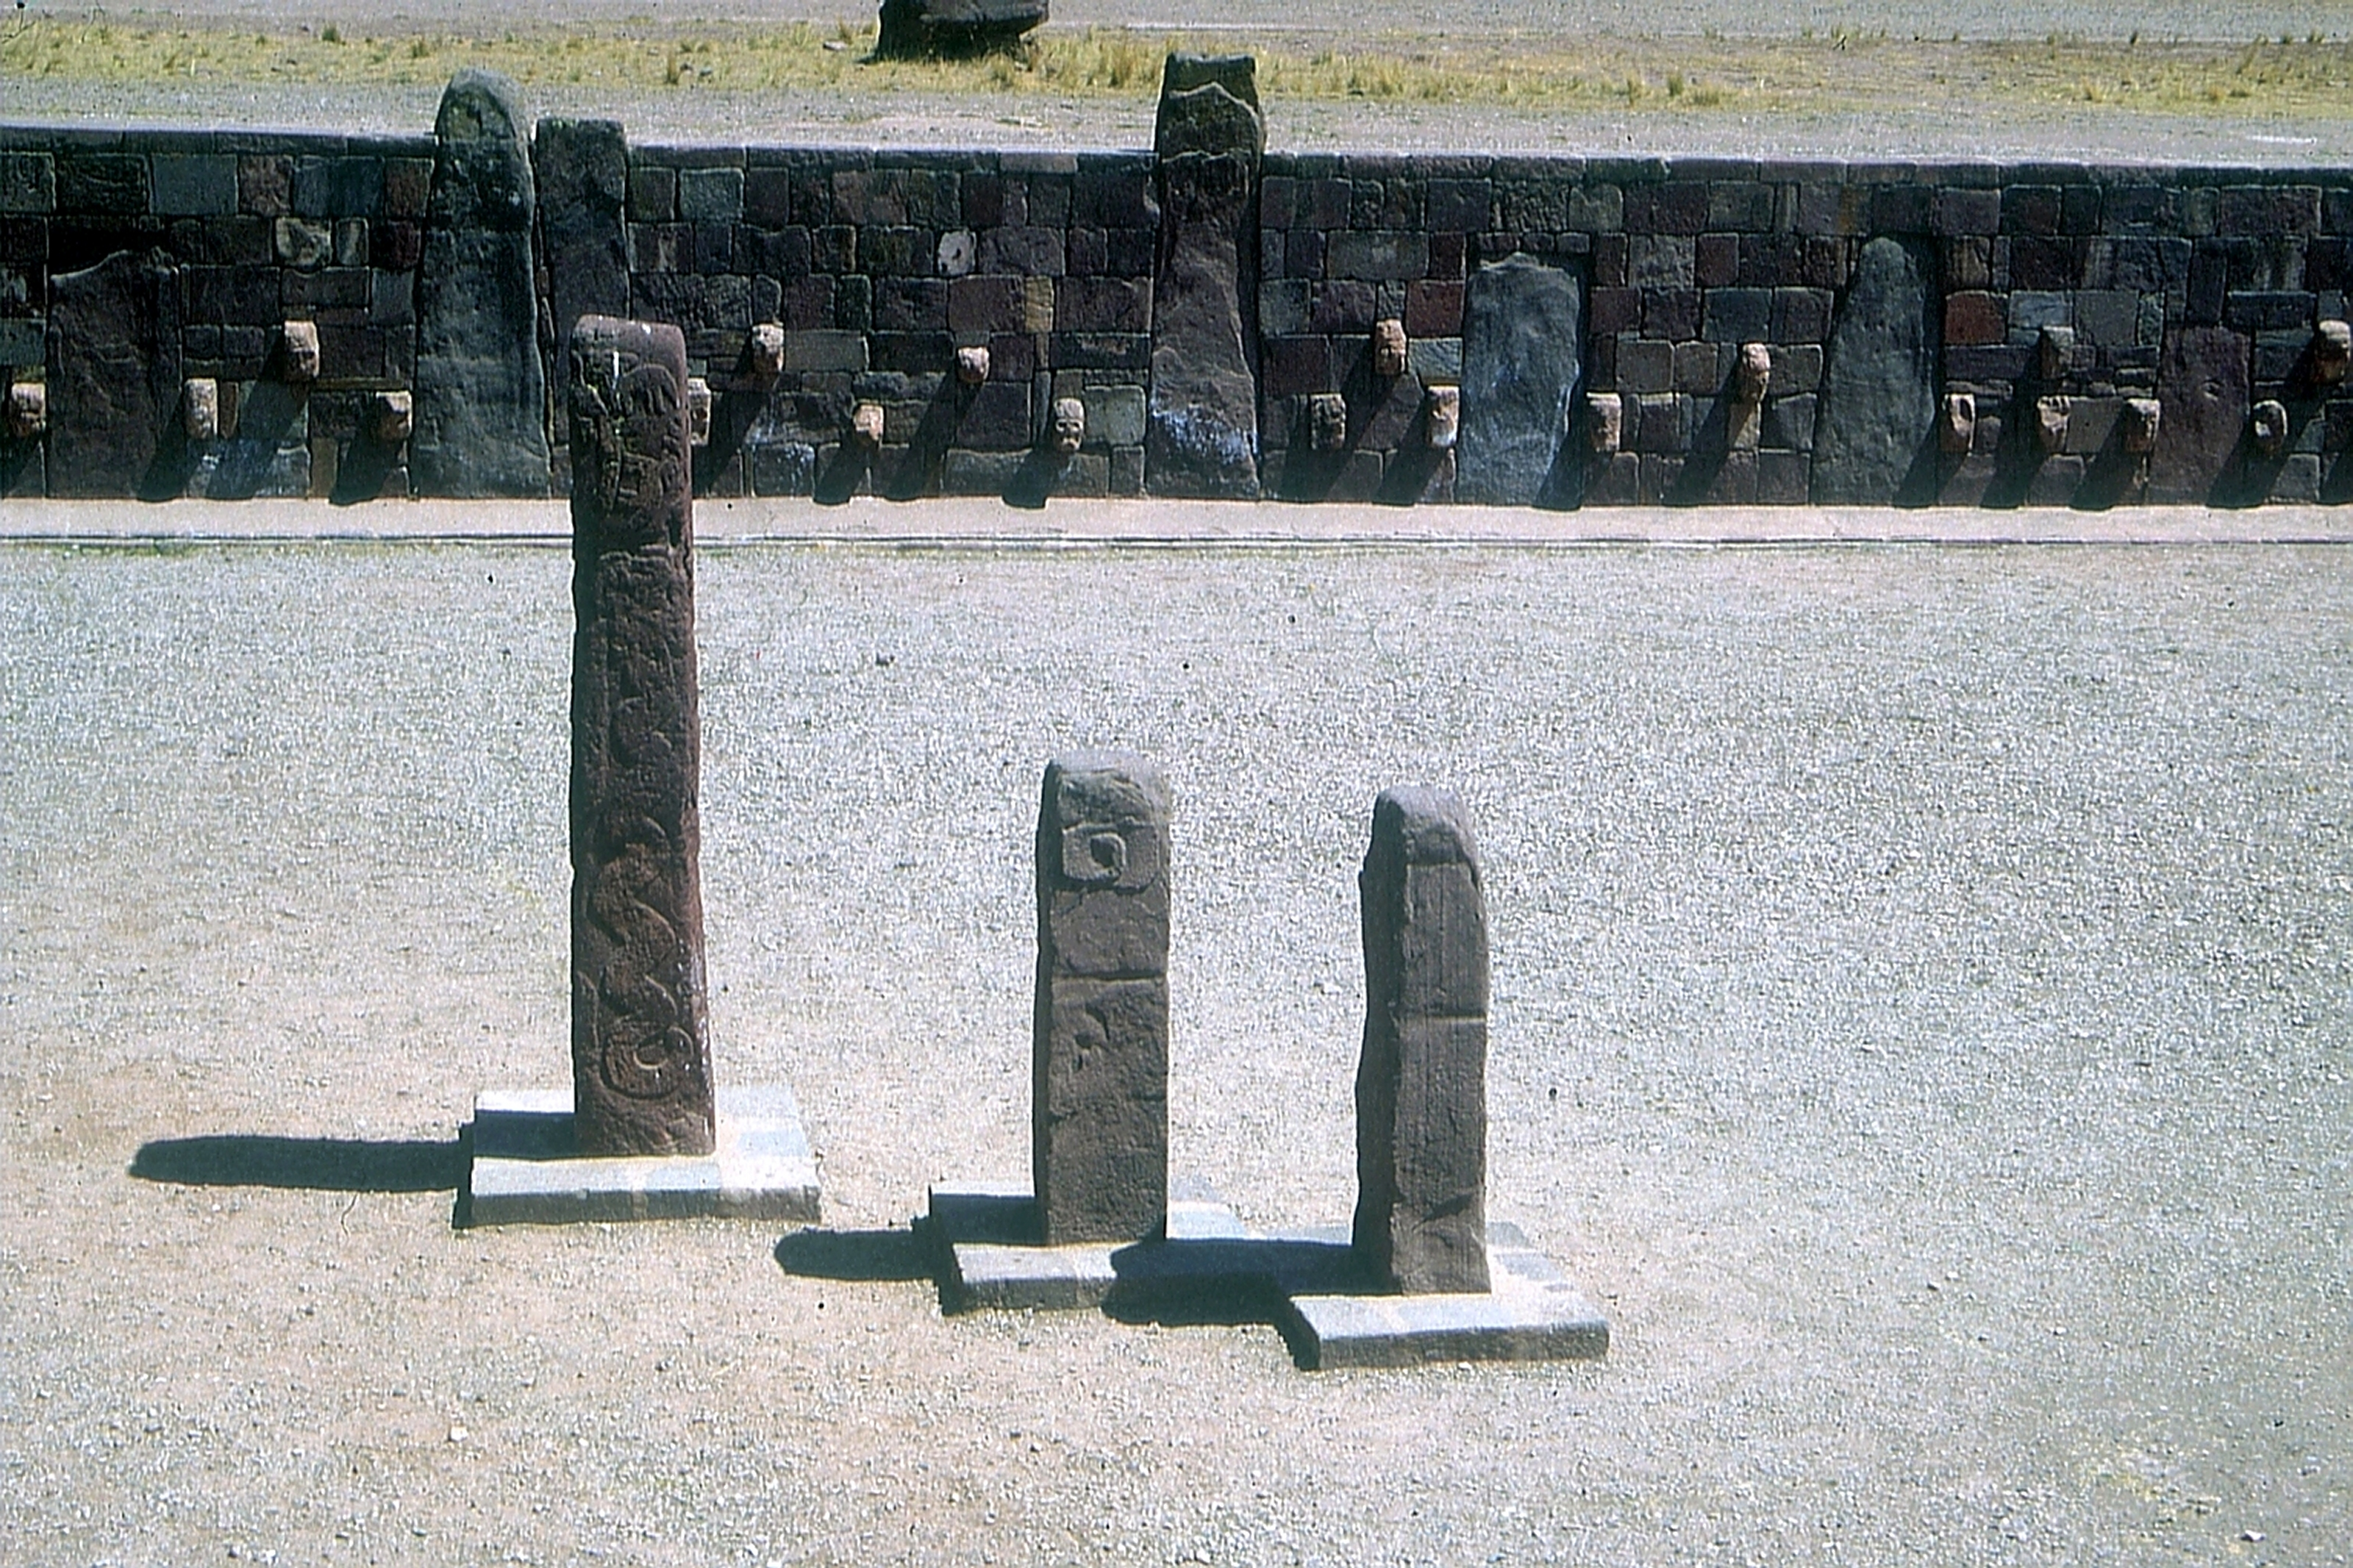 Tiwanaku By Dr. Eugen Lehle (Eigenes Werk (own work) http://bodenlabor.de) [GFDL (http://www.gnu.org/copyleft/fdl.html) or CC-BY-SA-3.0-2.5-2.0-1.0 (http://creativecommons.org/licenses/by-sa/3.0)], via Wikimedia Commons